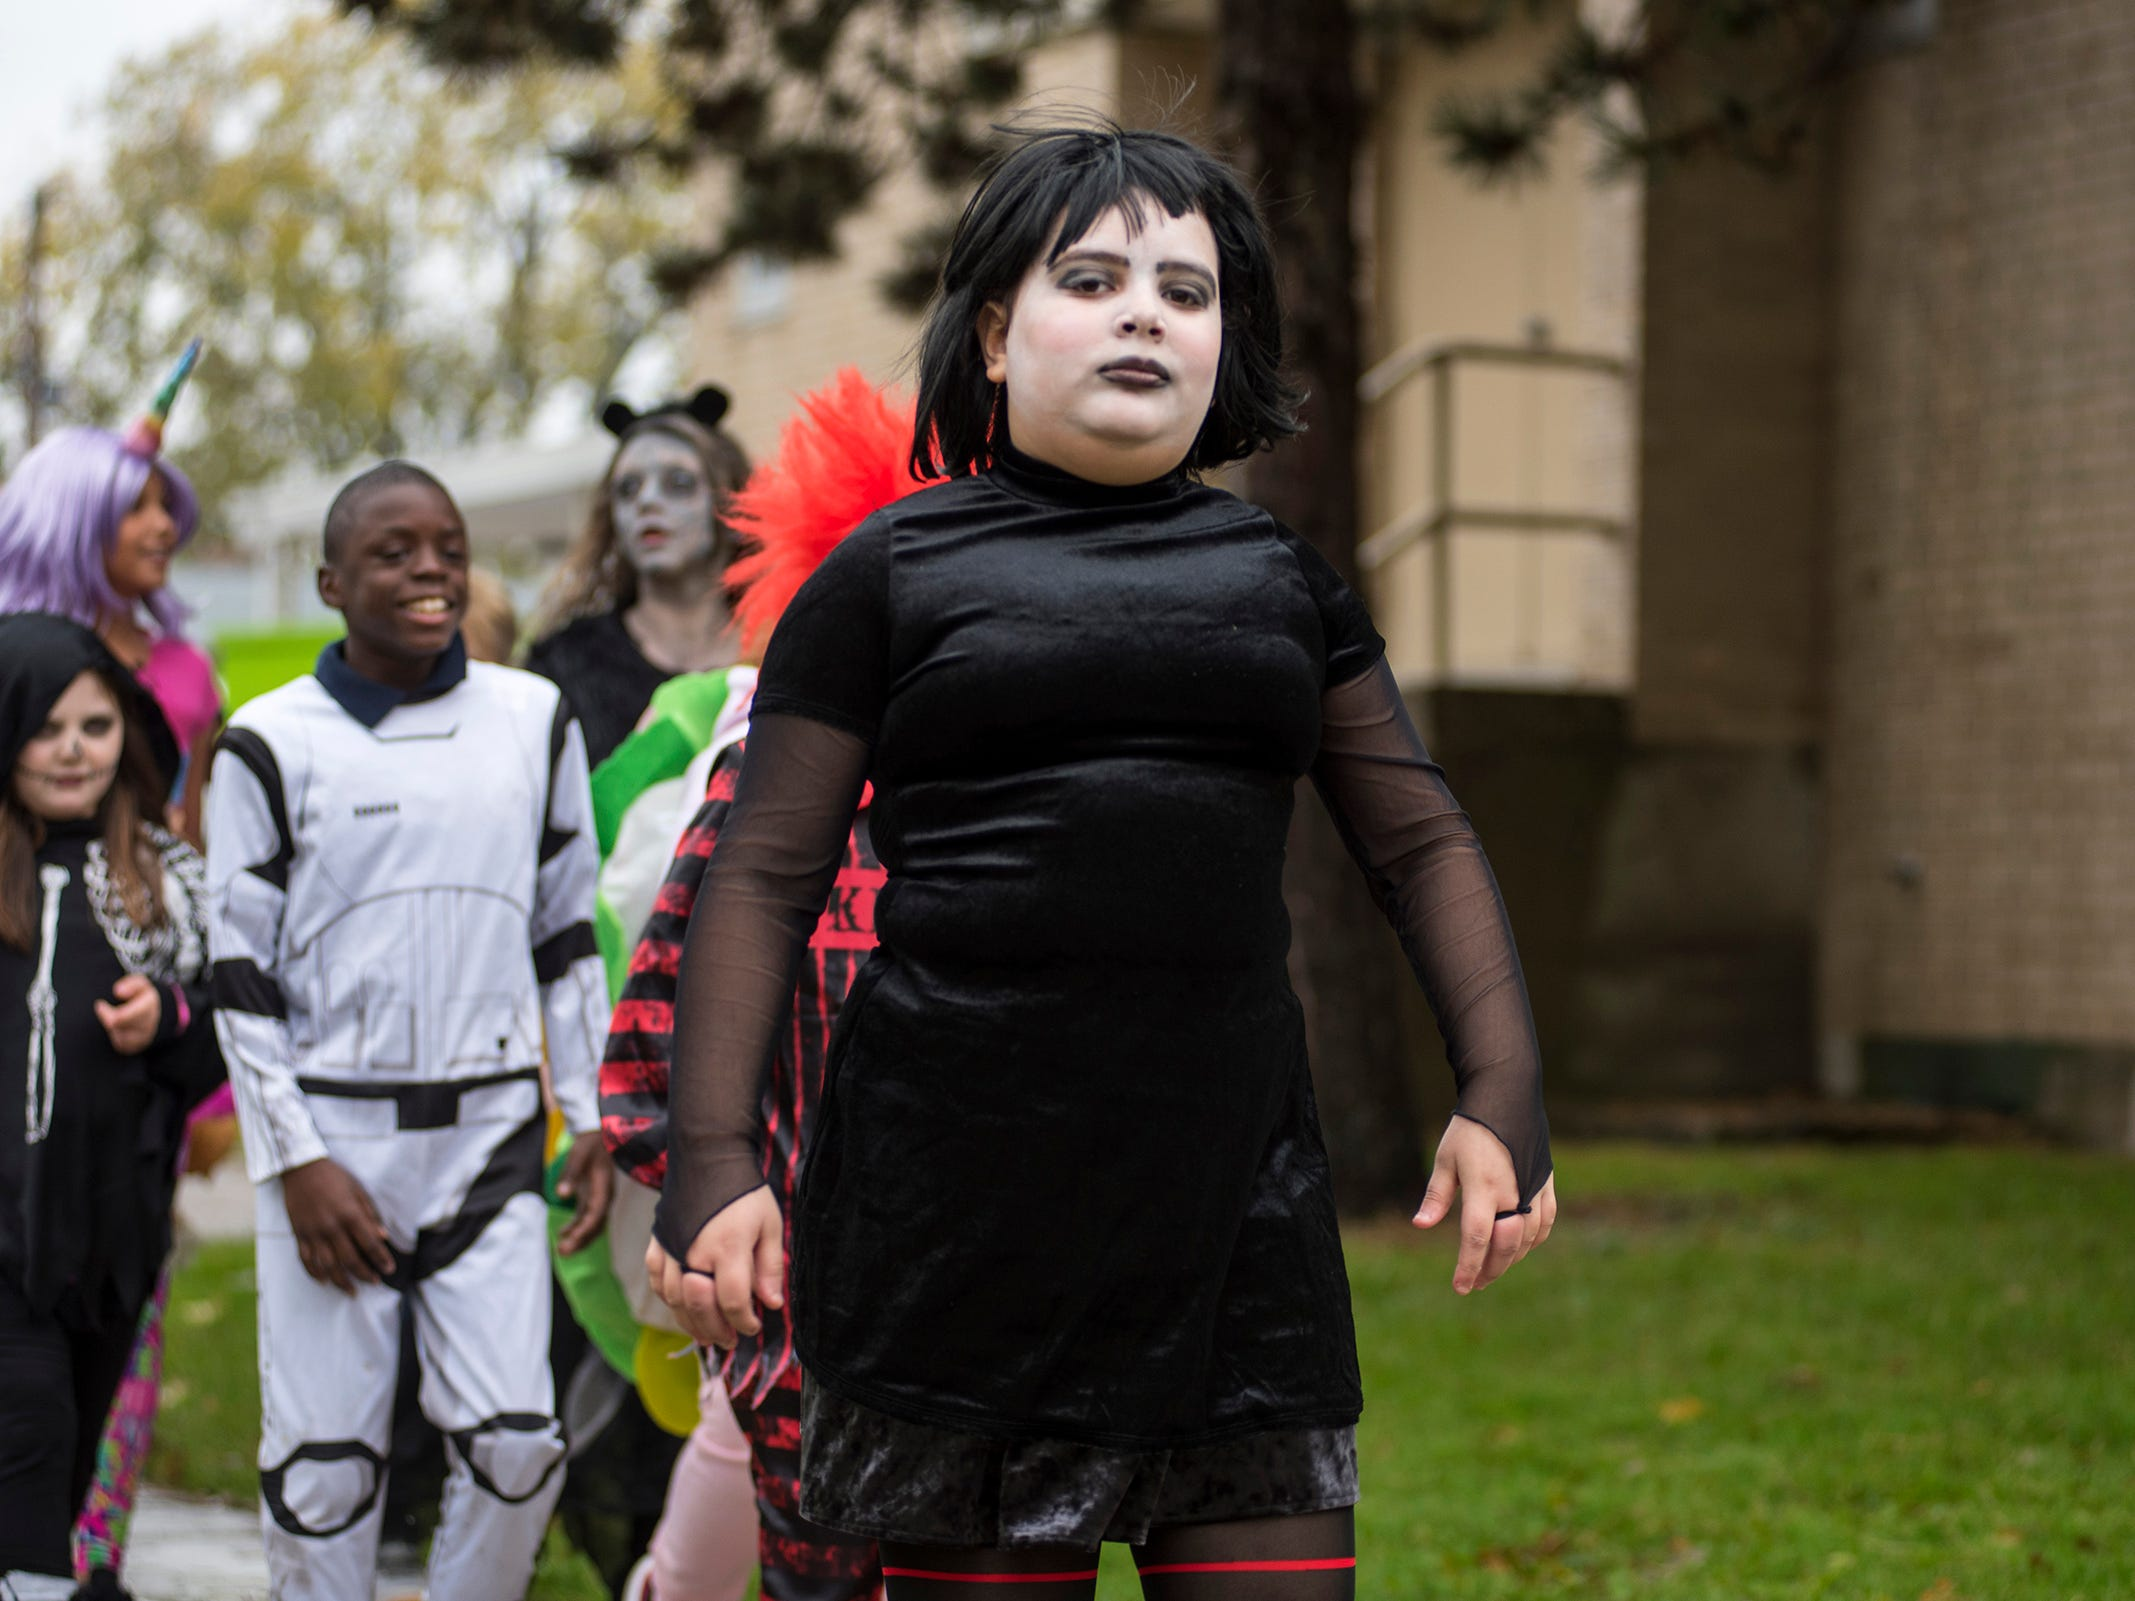 STEAM Academy at Woodrow Wilson fifth-grader Meya Testo walks in the school's Halloween parade dressed as Mavis from 'Hotel Transylvania' Wednesday, Oct. 31, 2018.